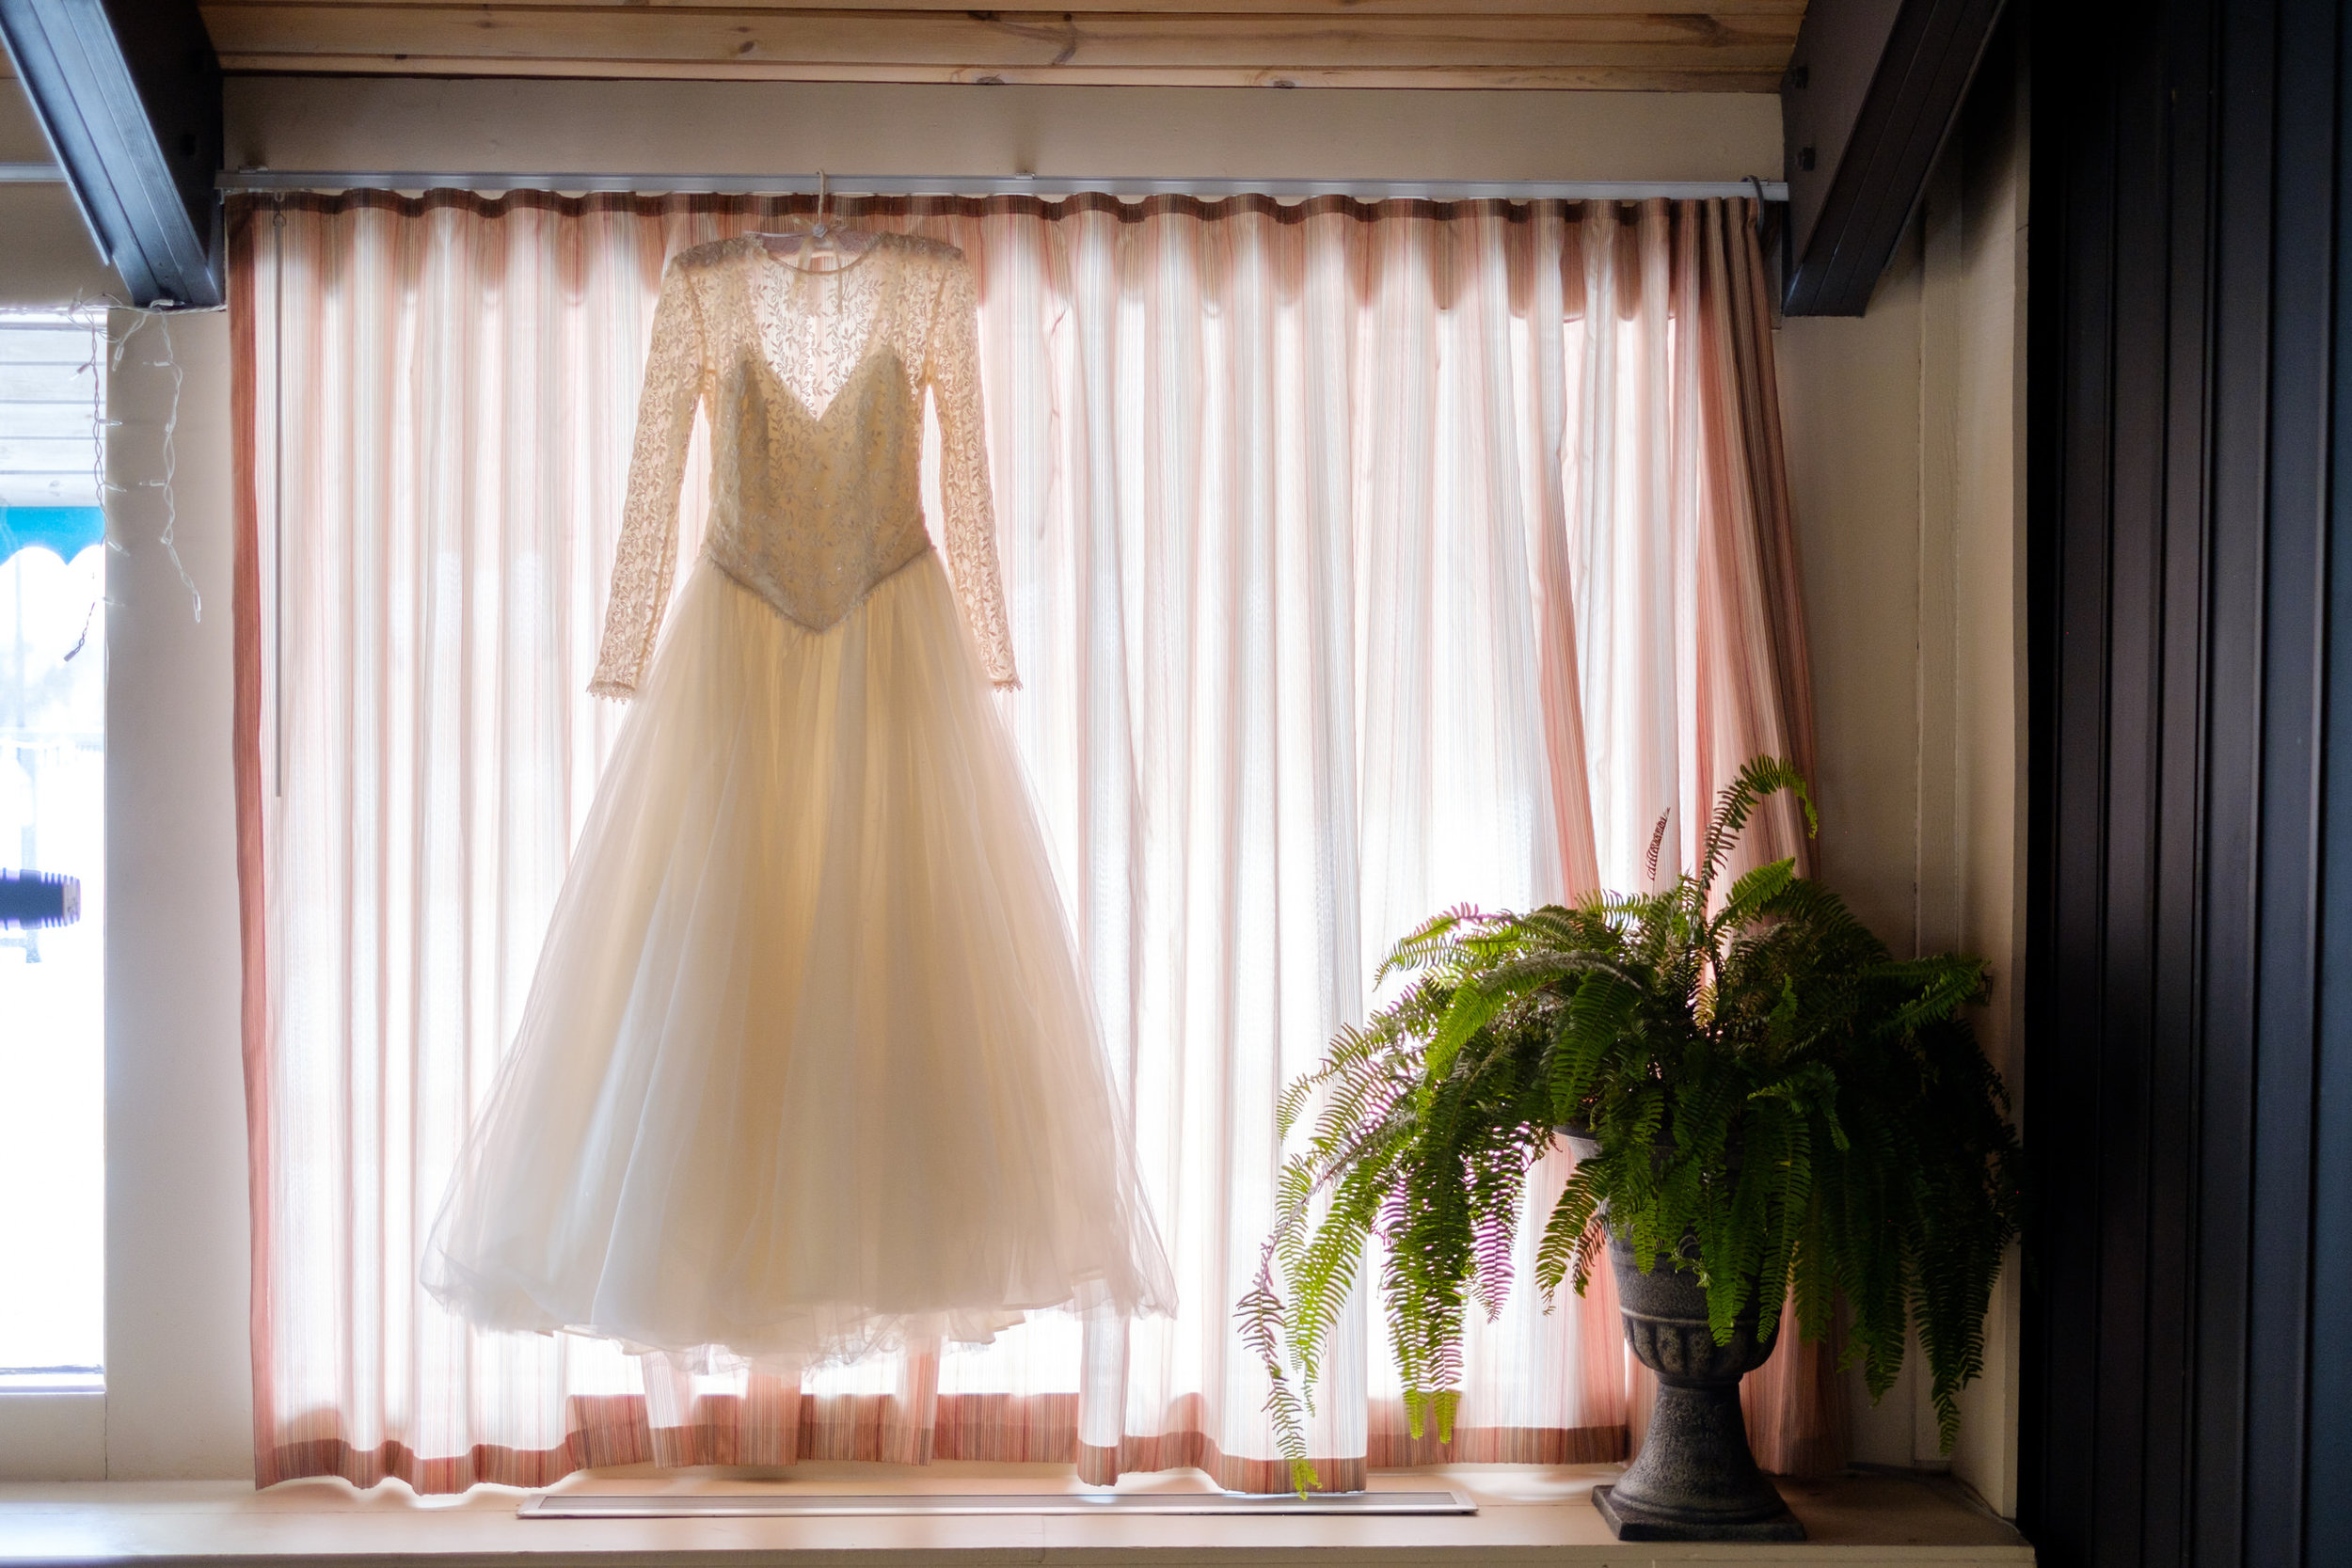 Cragun's Resort Winter Wedding Dress hanging in the window